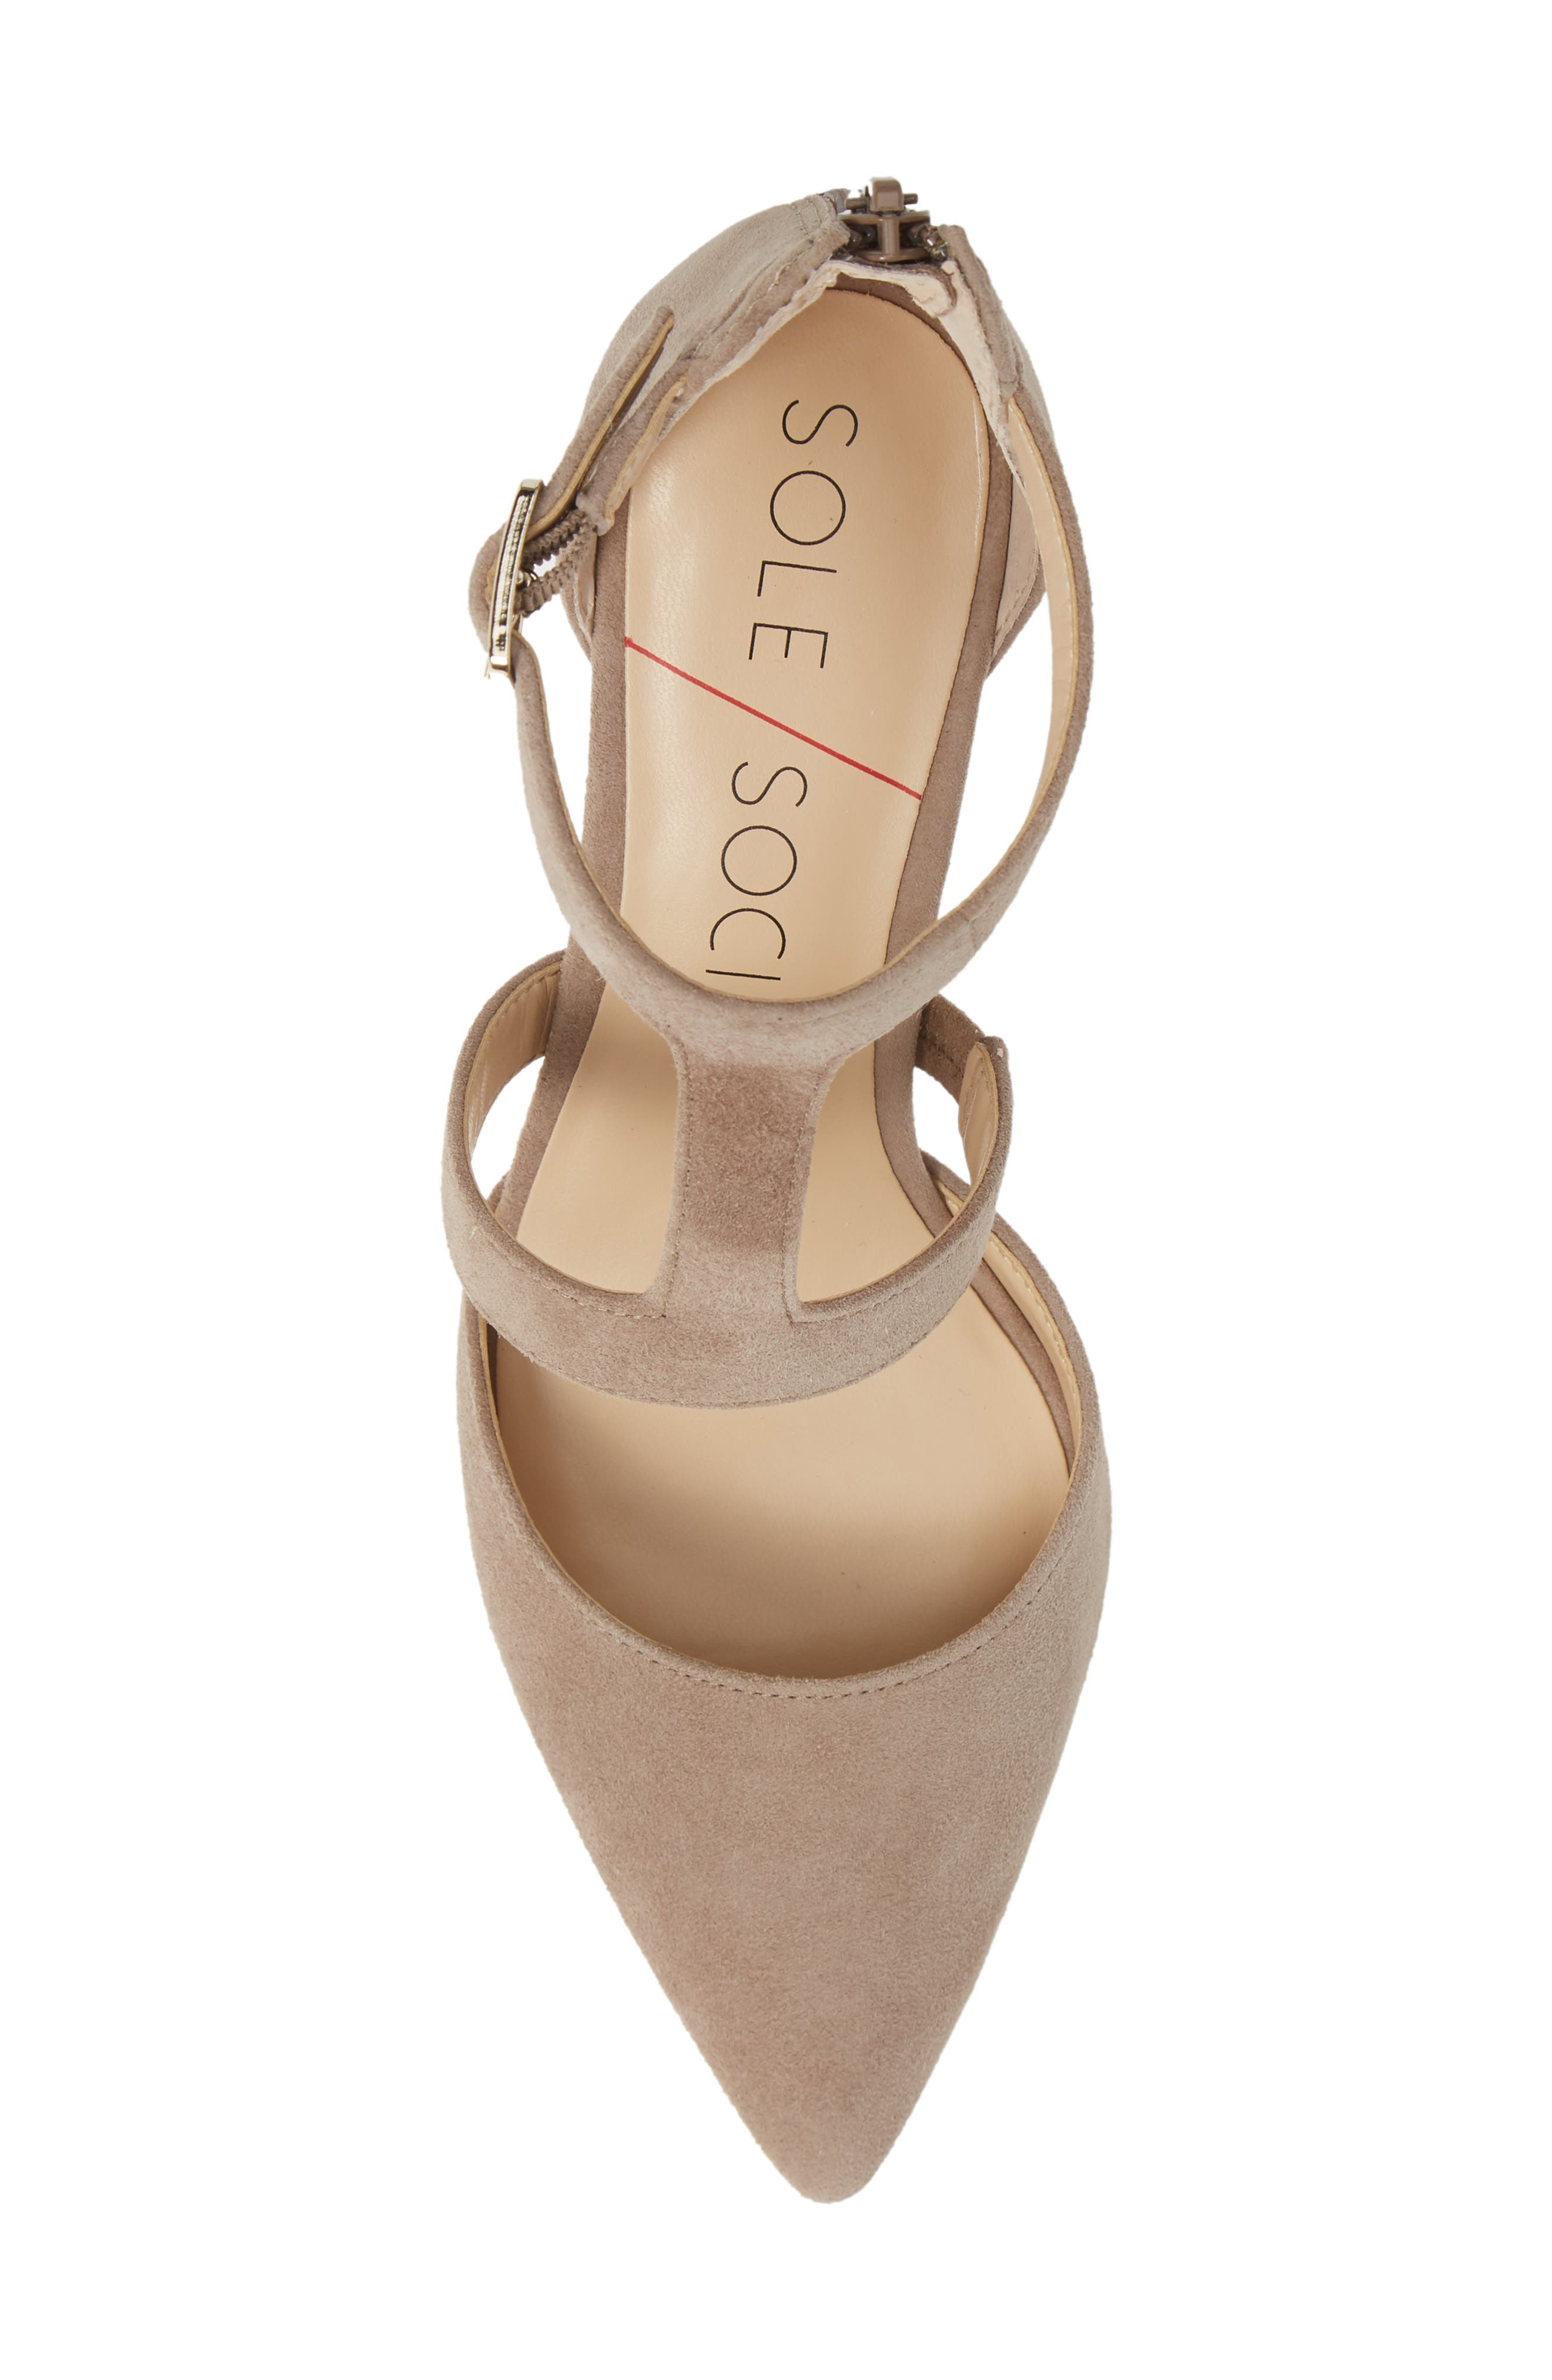 SOLE SOCIETY, Edelyn Pump, Alternate thumbnail 5, color, FALL TAUPE SUEDE